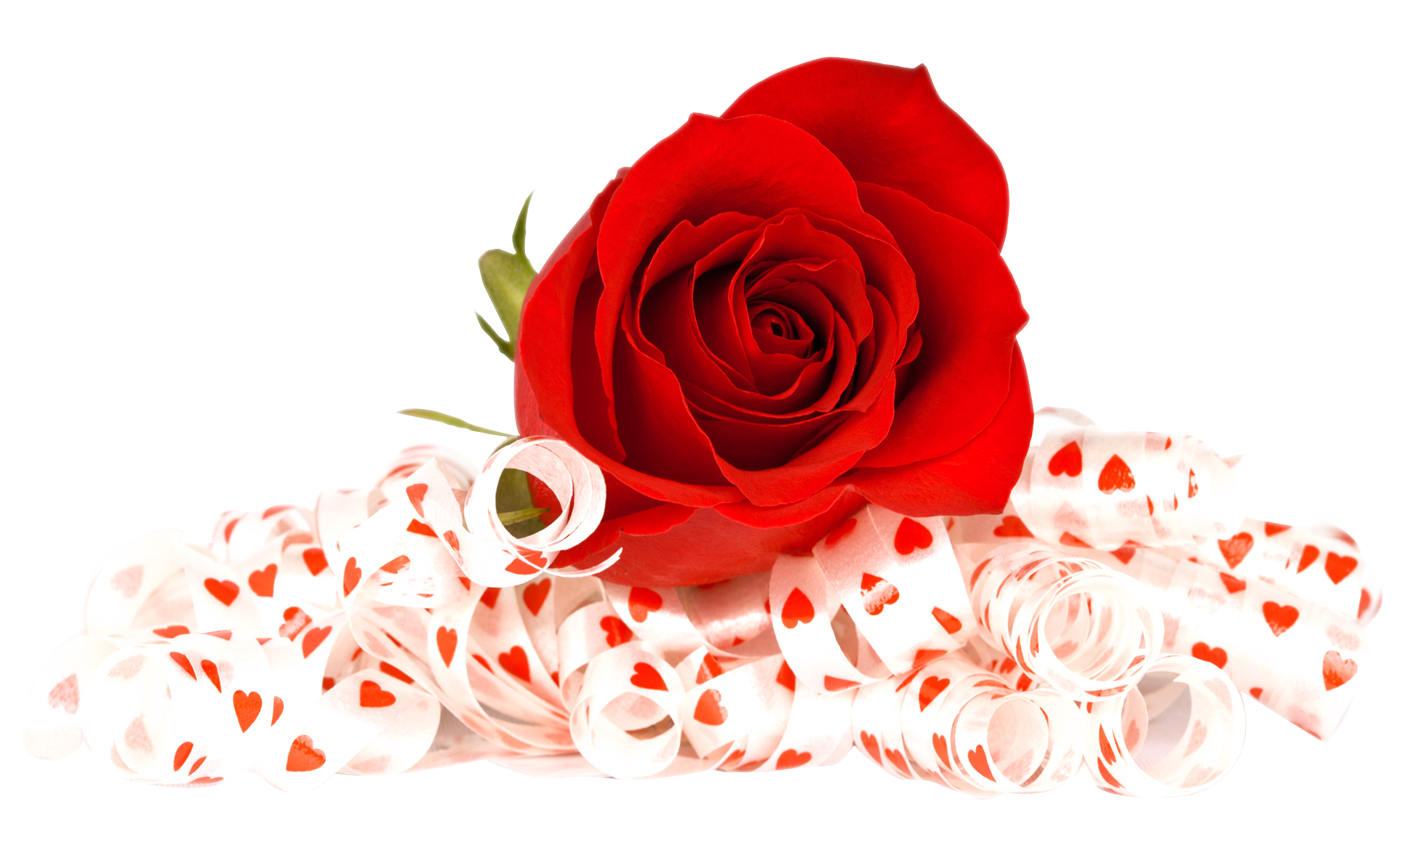 Red Rose PNG image - PngPix for Transparent Png Images Roses  103wja